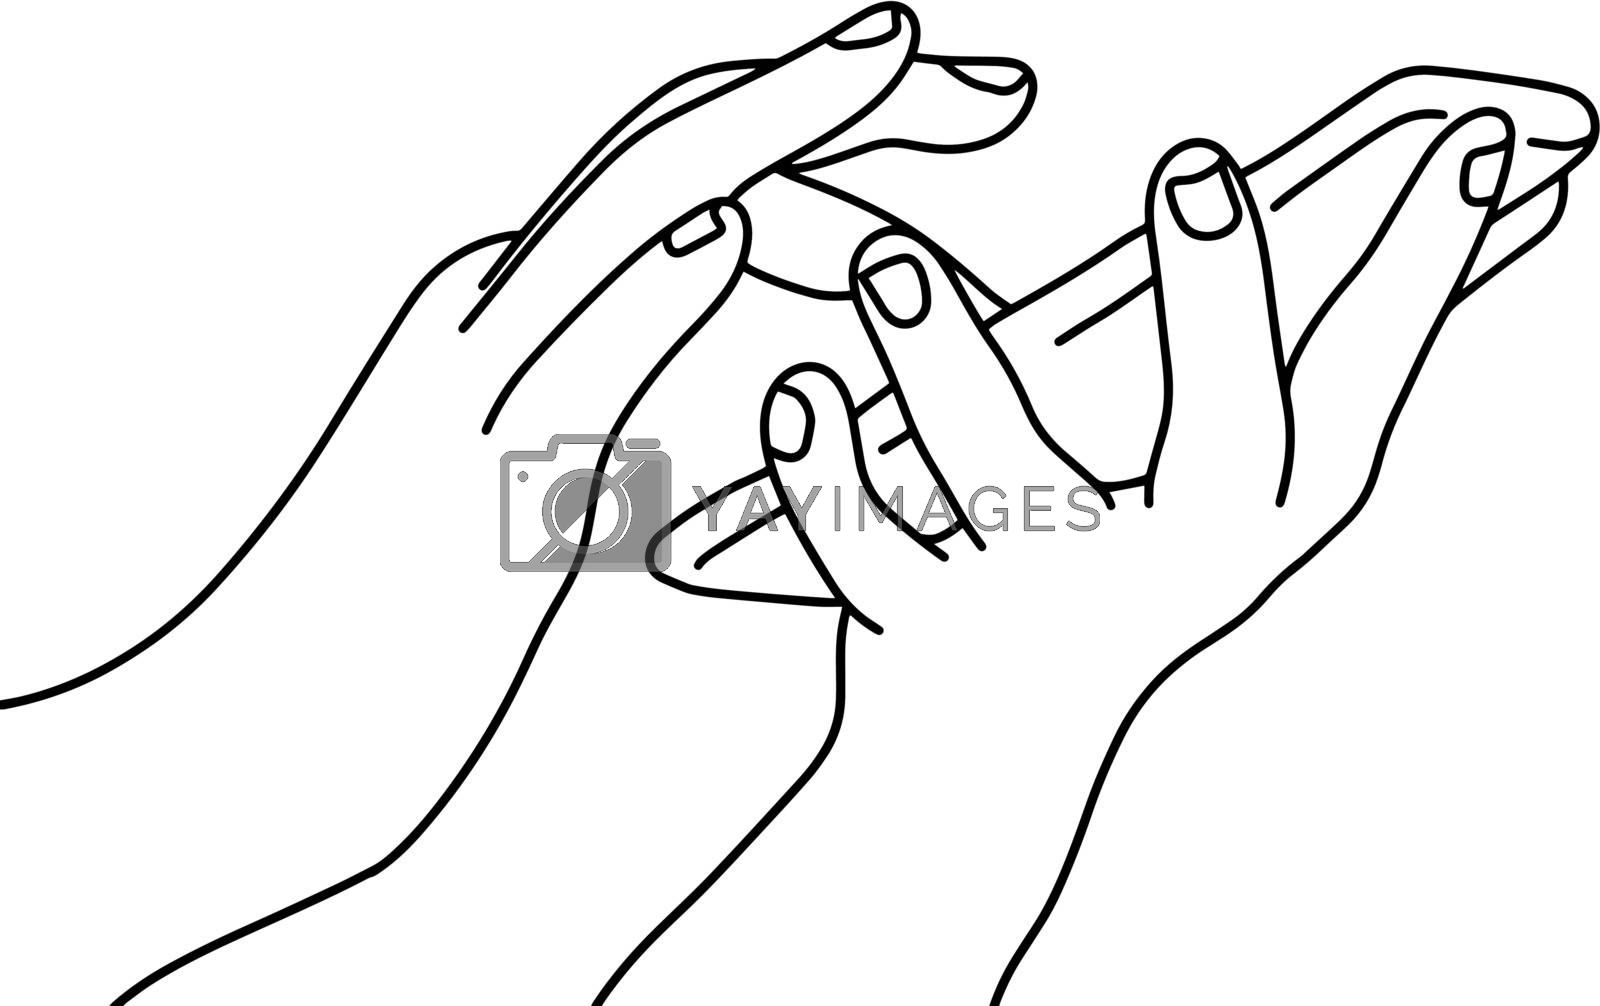 close-up two hands using mobile phone vector illustration sketch doodle hand drawn with black lines isolated on white background